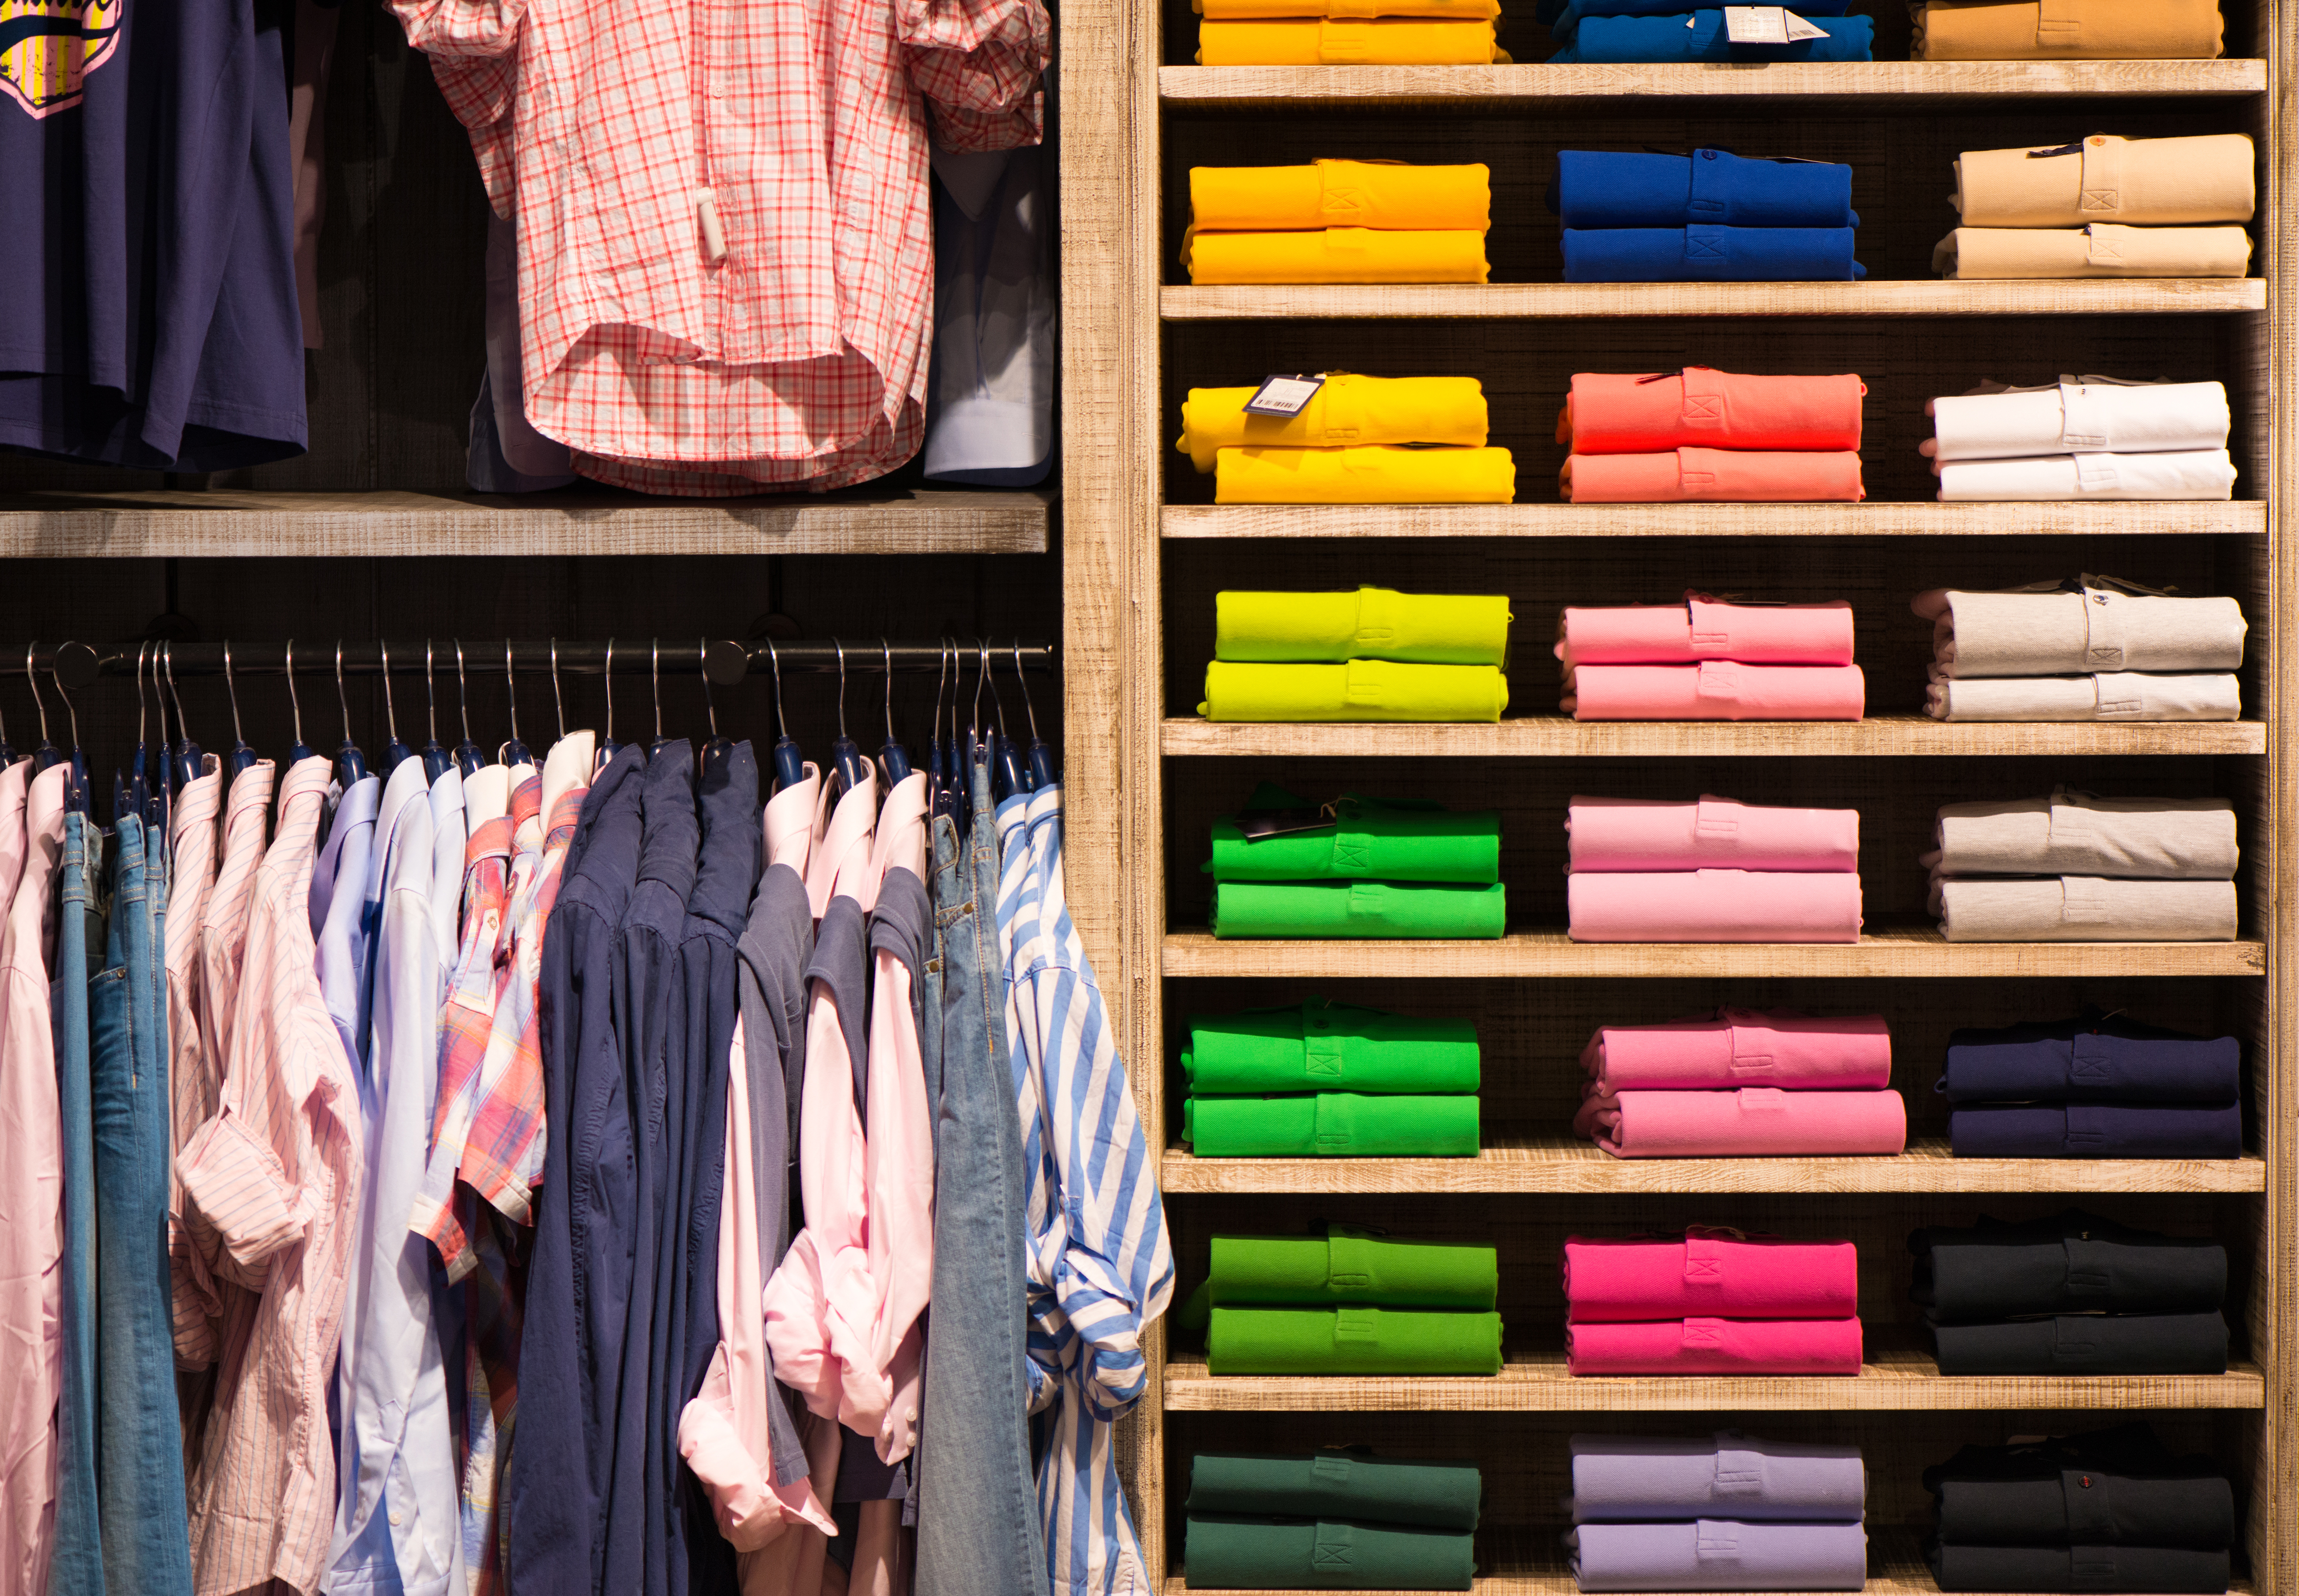 For most apparel brands and retailers, IP is their most valuable asset.